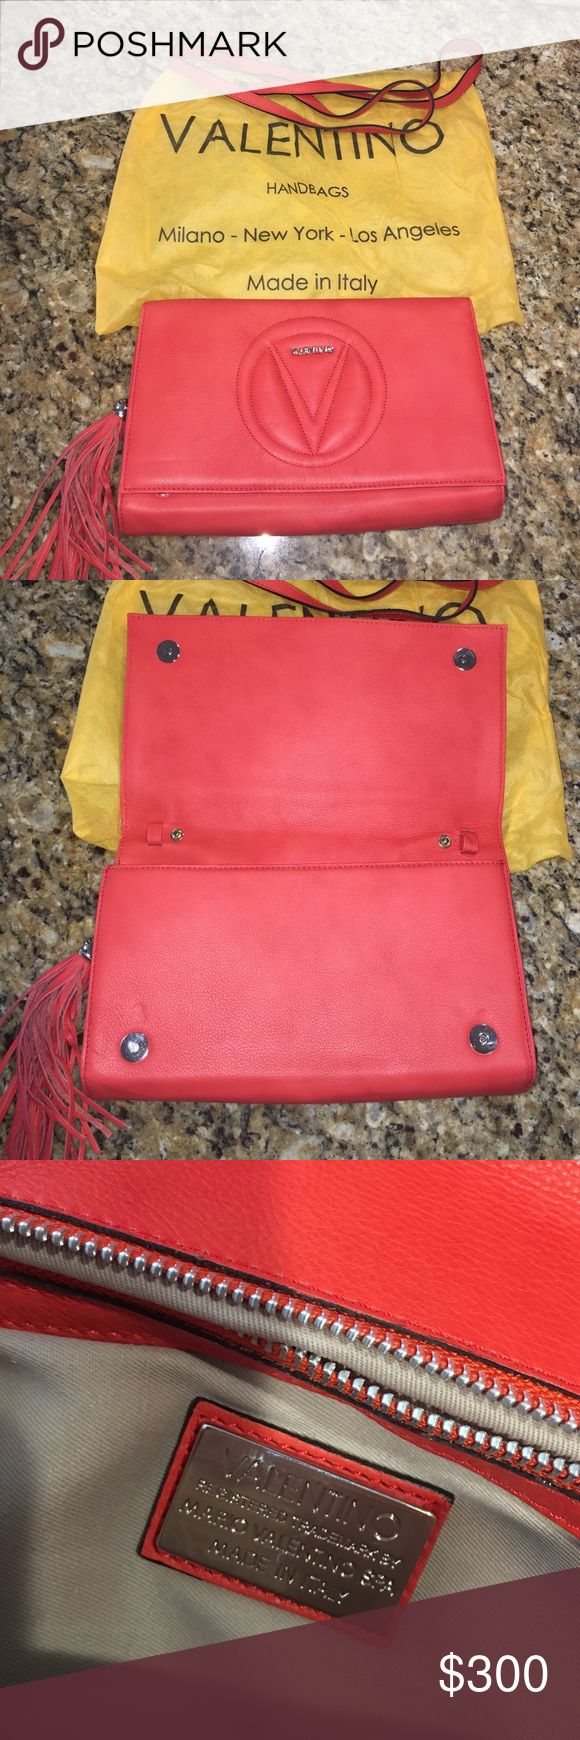 ✨VALENTINO CLUTCH BAG✨ In mint condition! Valentino Bags Clutches & Wristlets